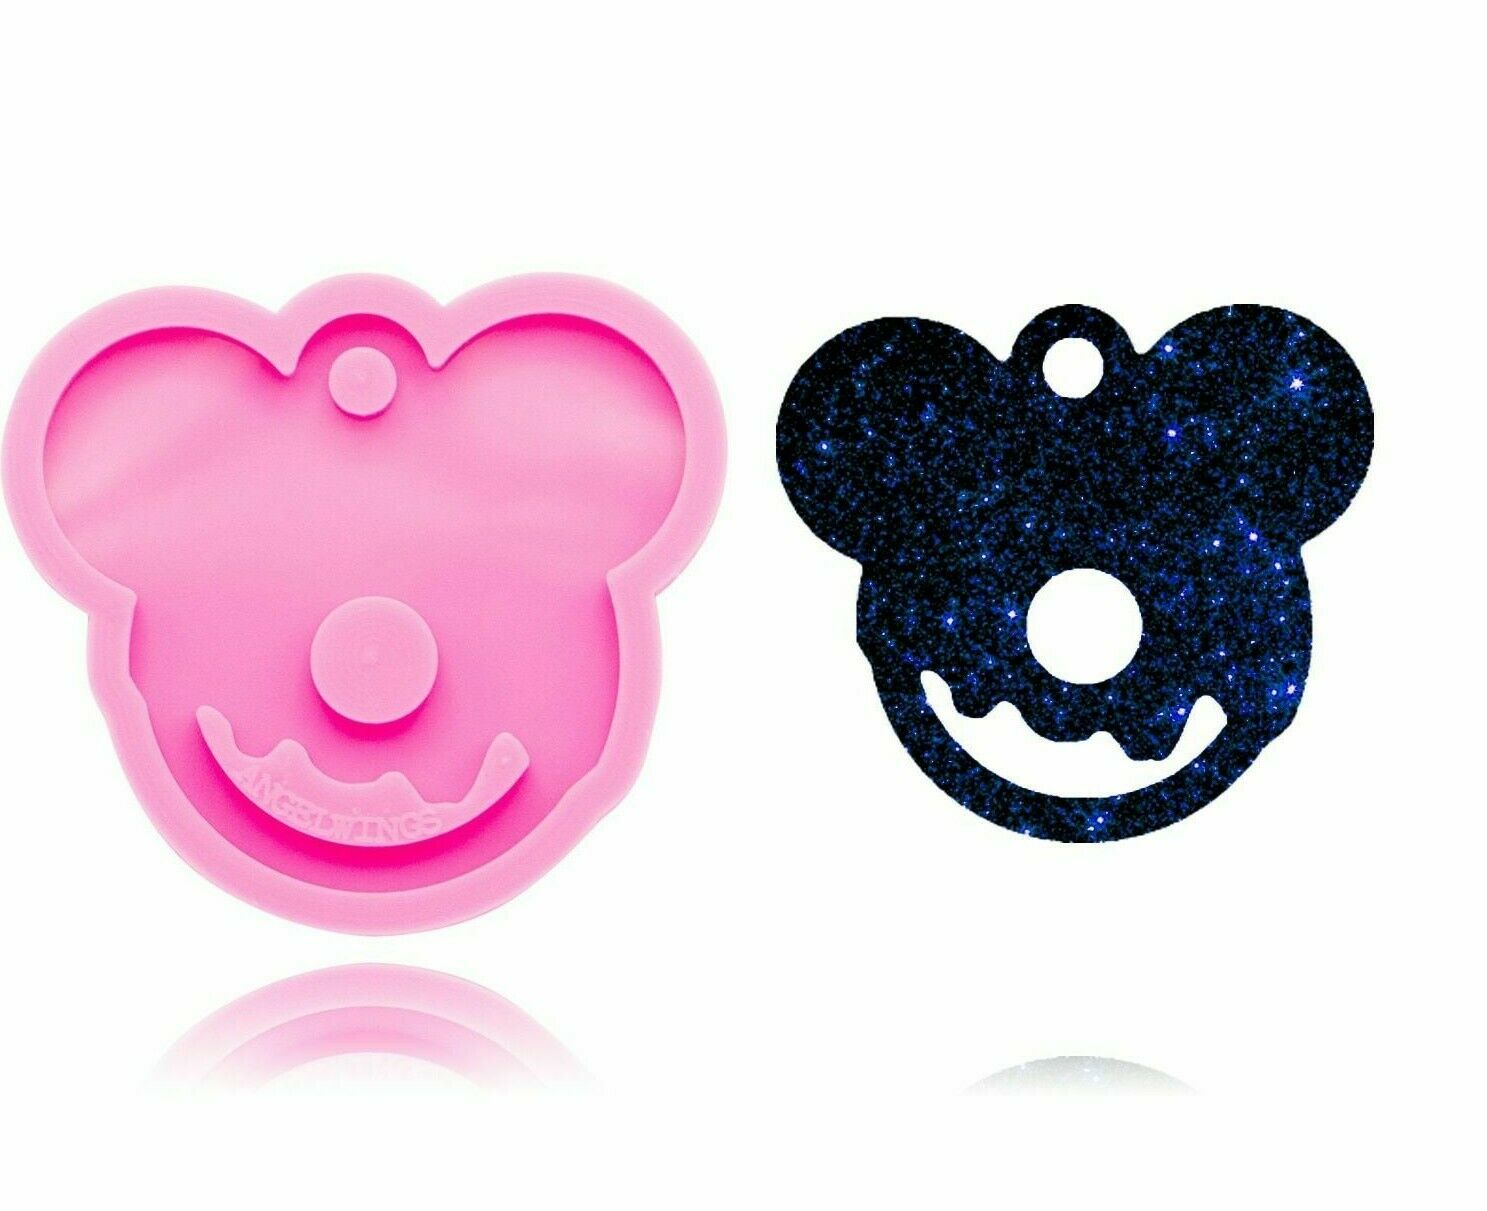 Bear head mold DIY Mouse head epoxy resin craft silicone keychain molds Key ring accessories,Silicone Mold,Jewelry Mold Glitter Mold